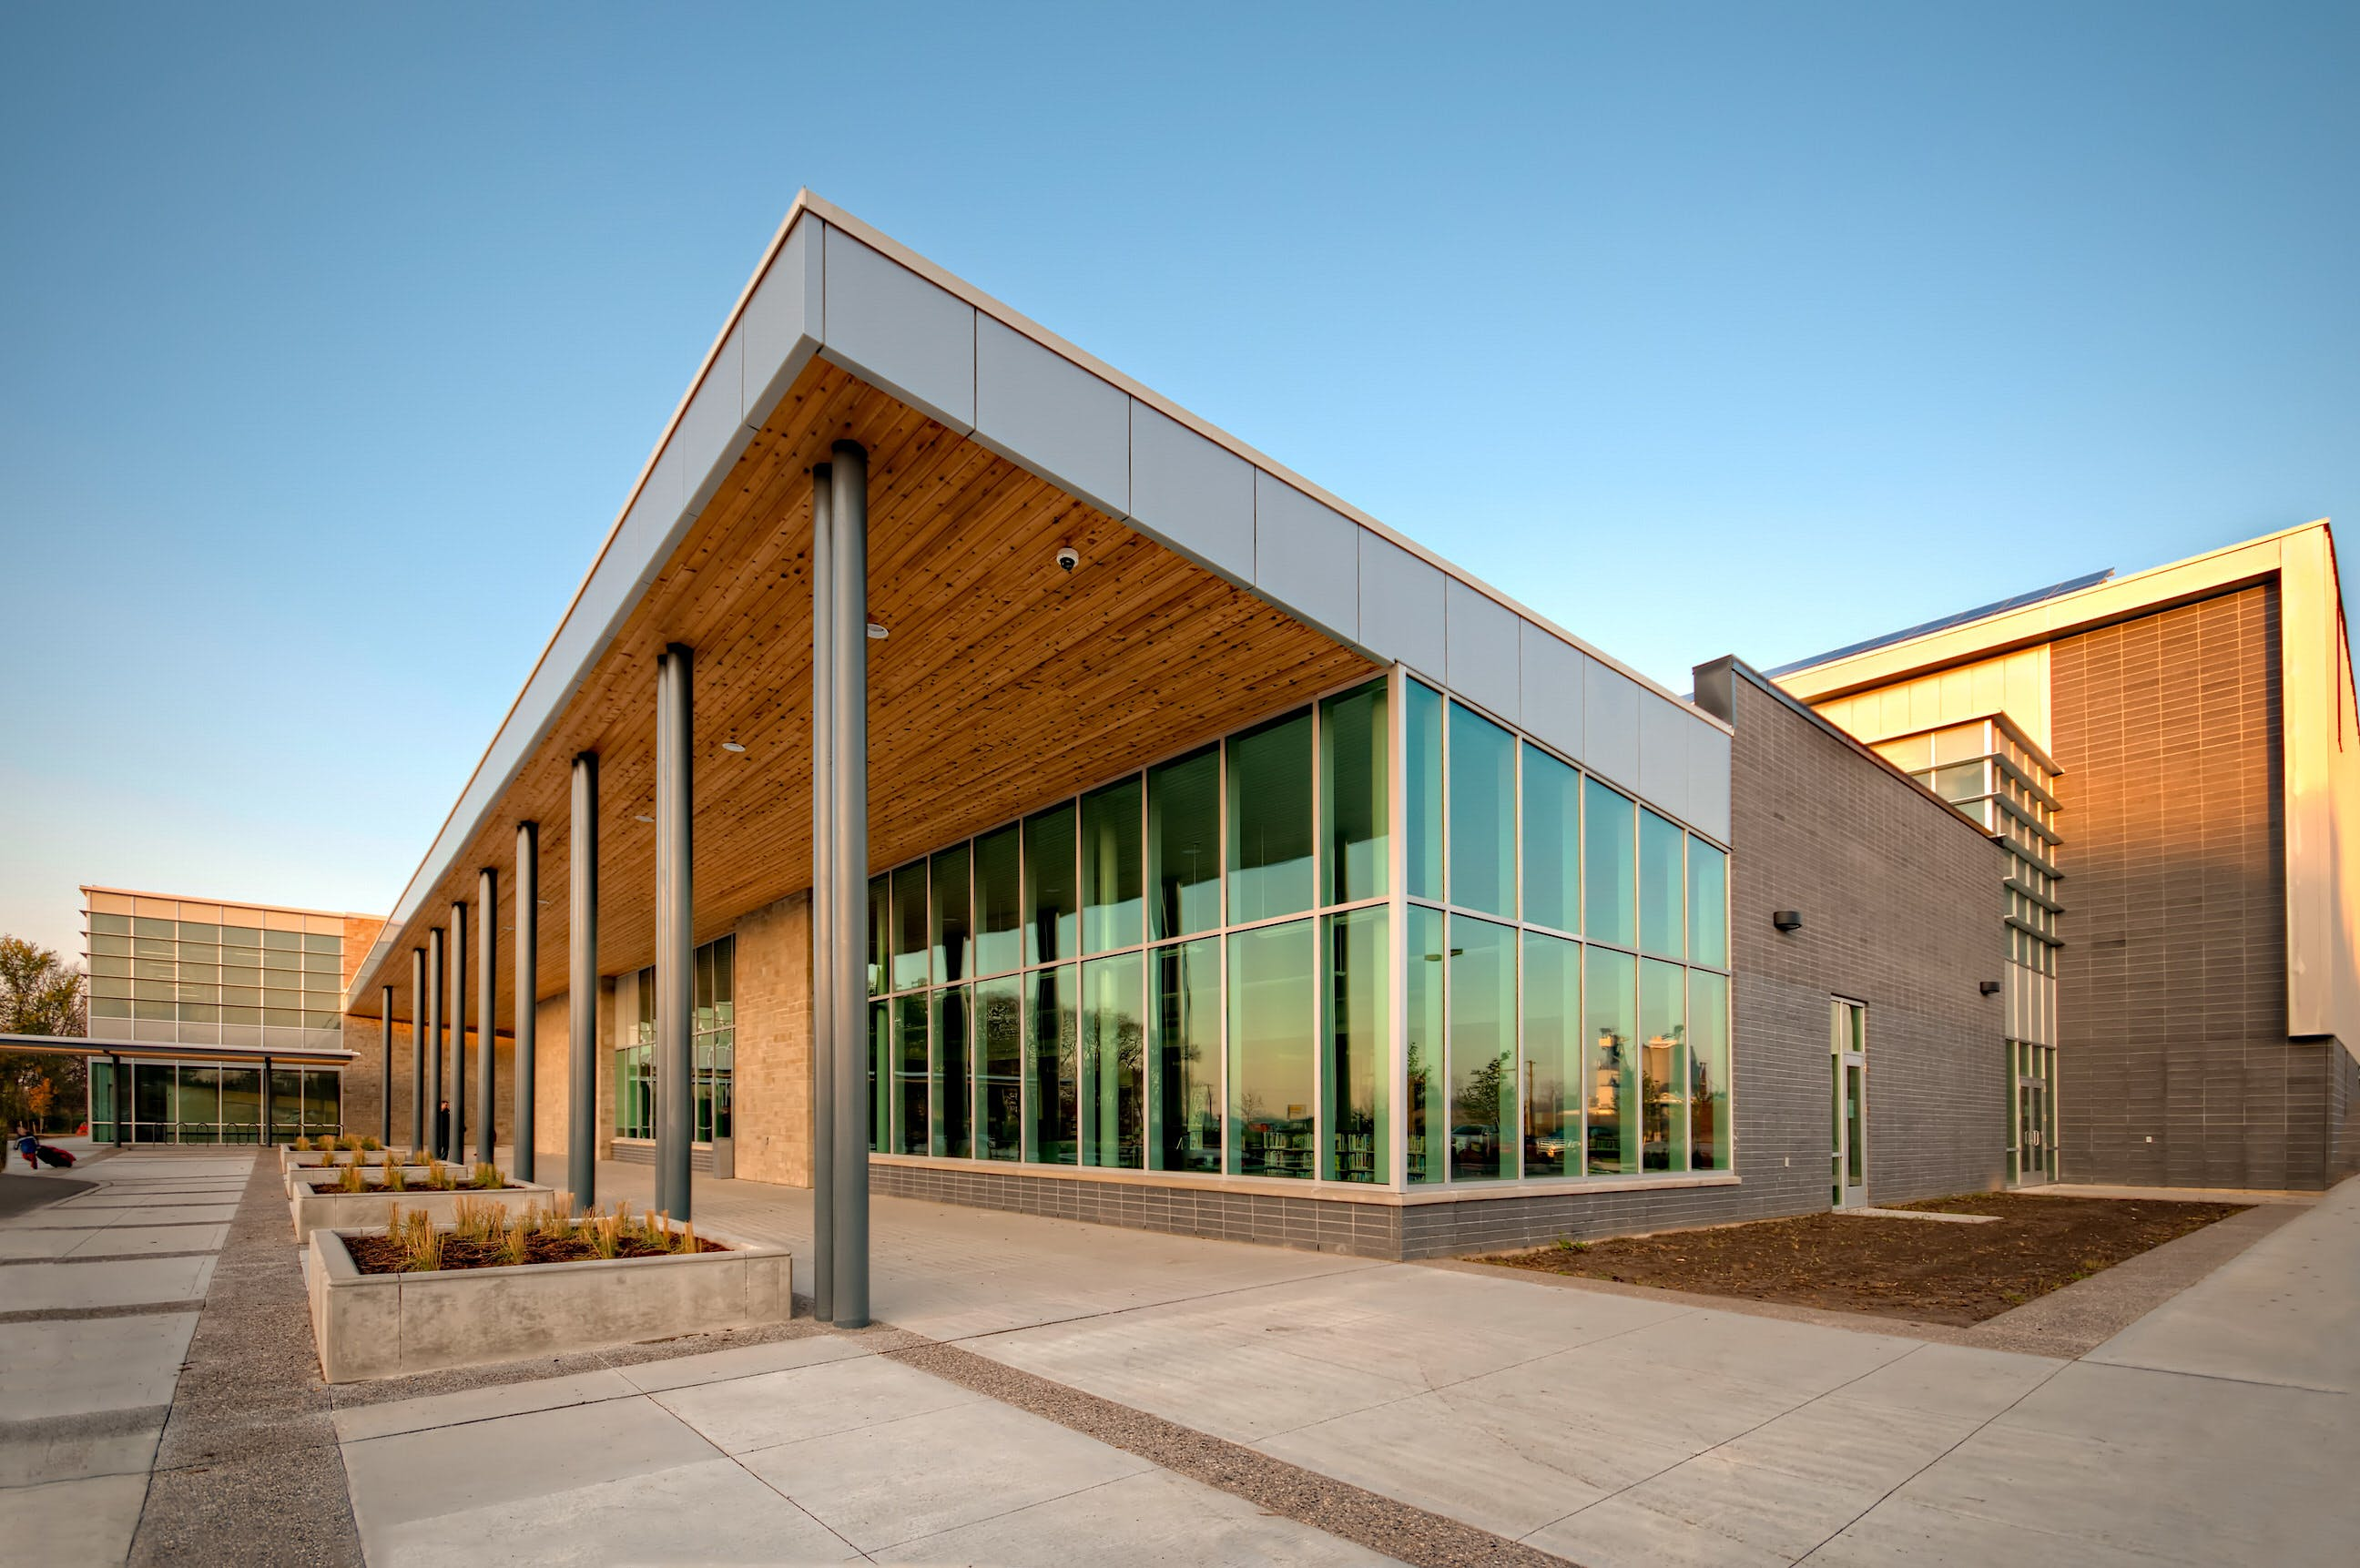 Architecture Photography of the Komoka Wellness and Recreation Centre